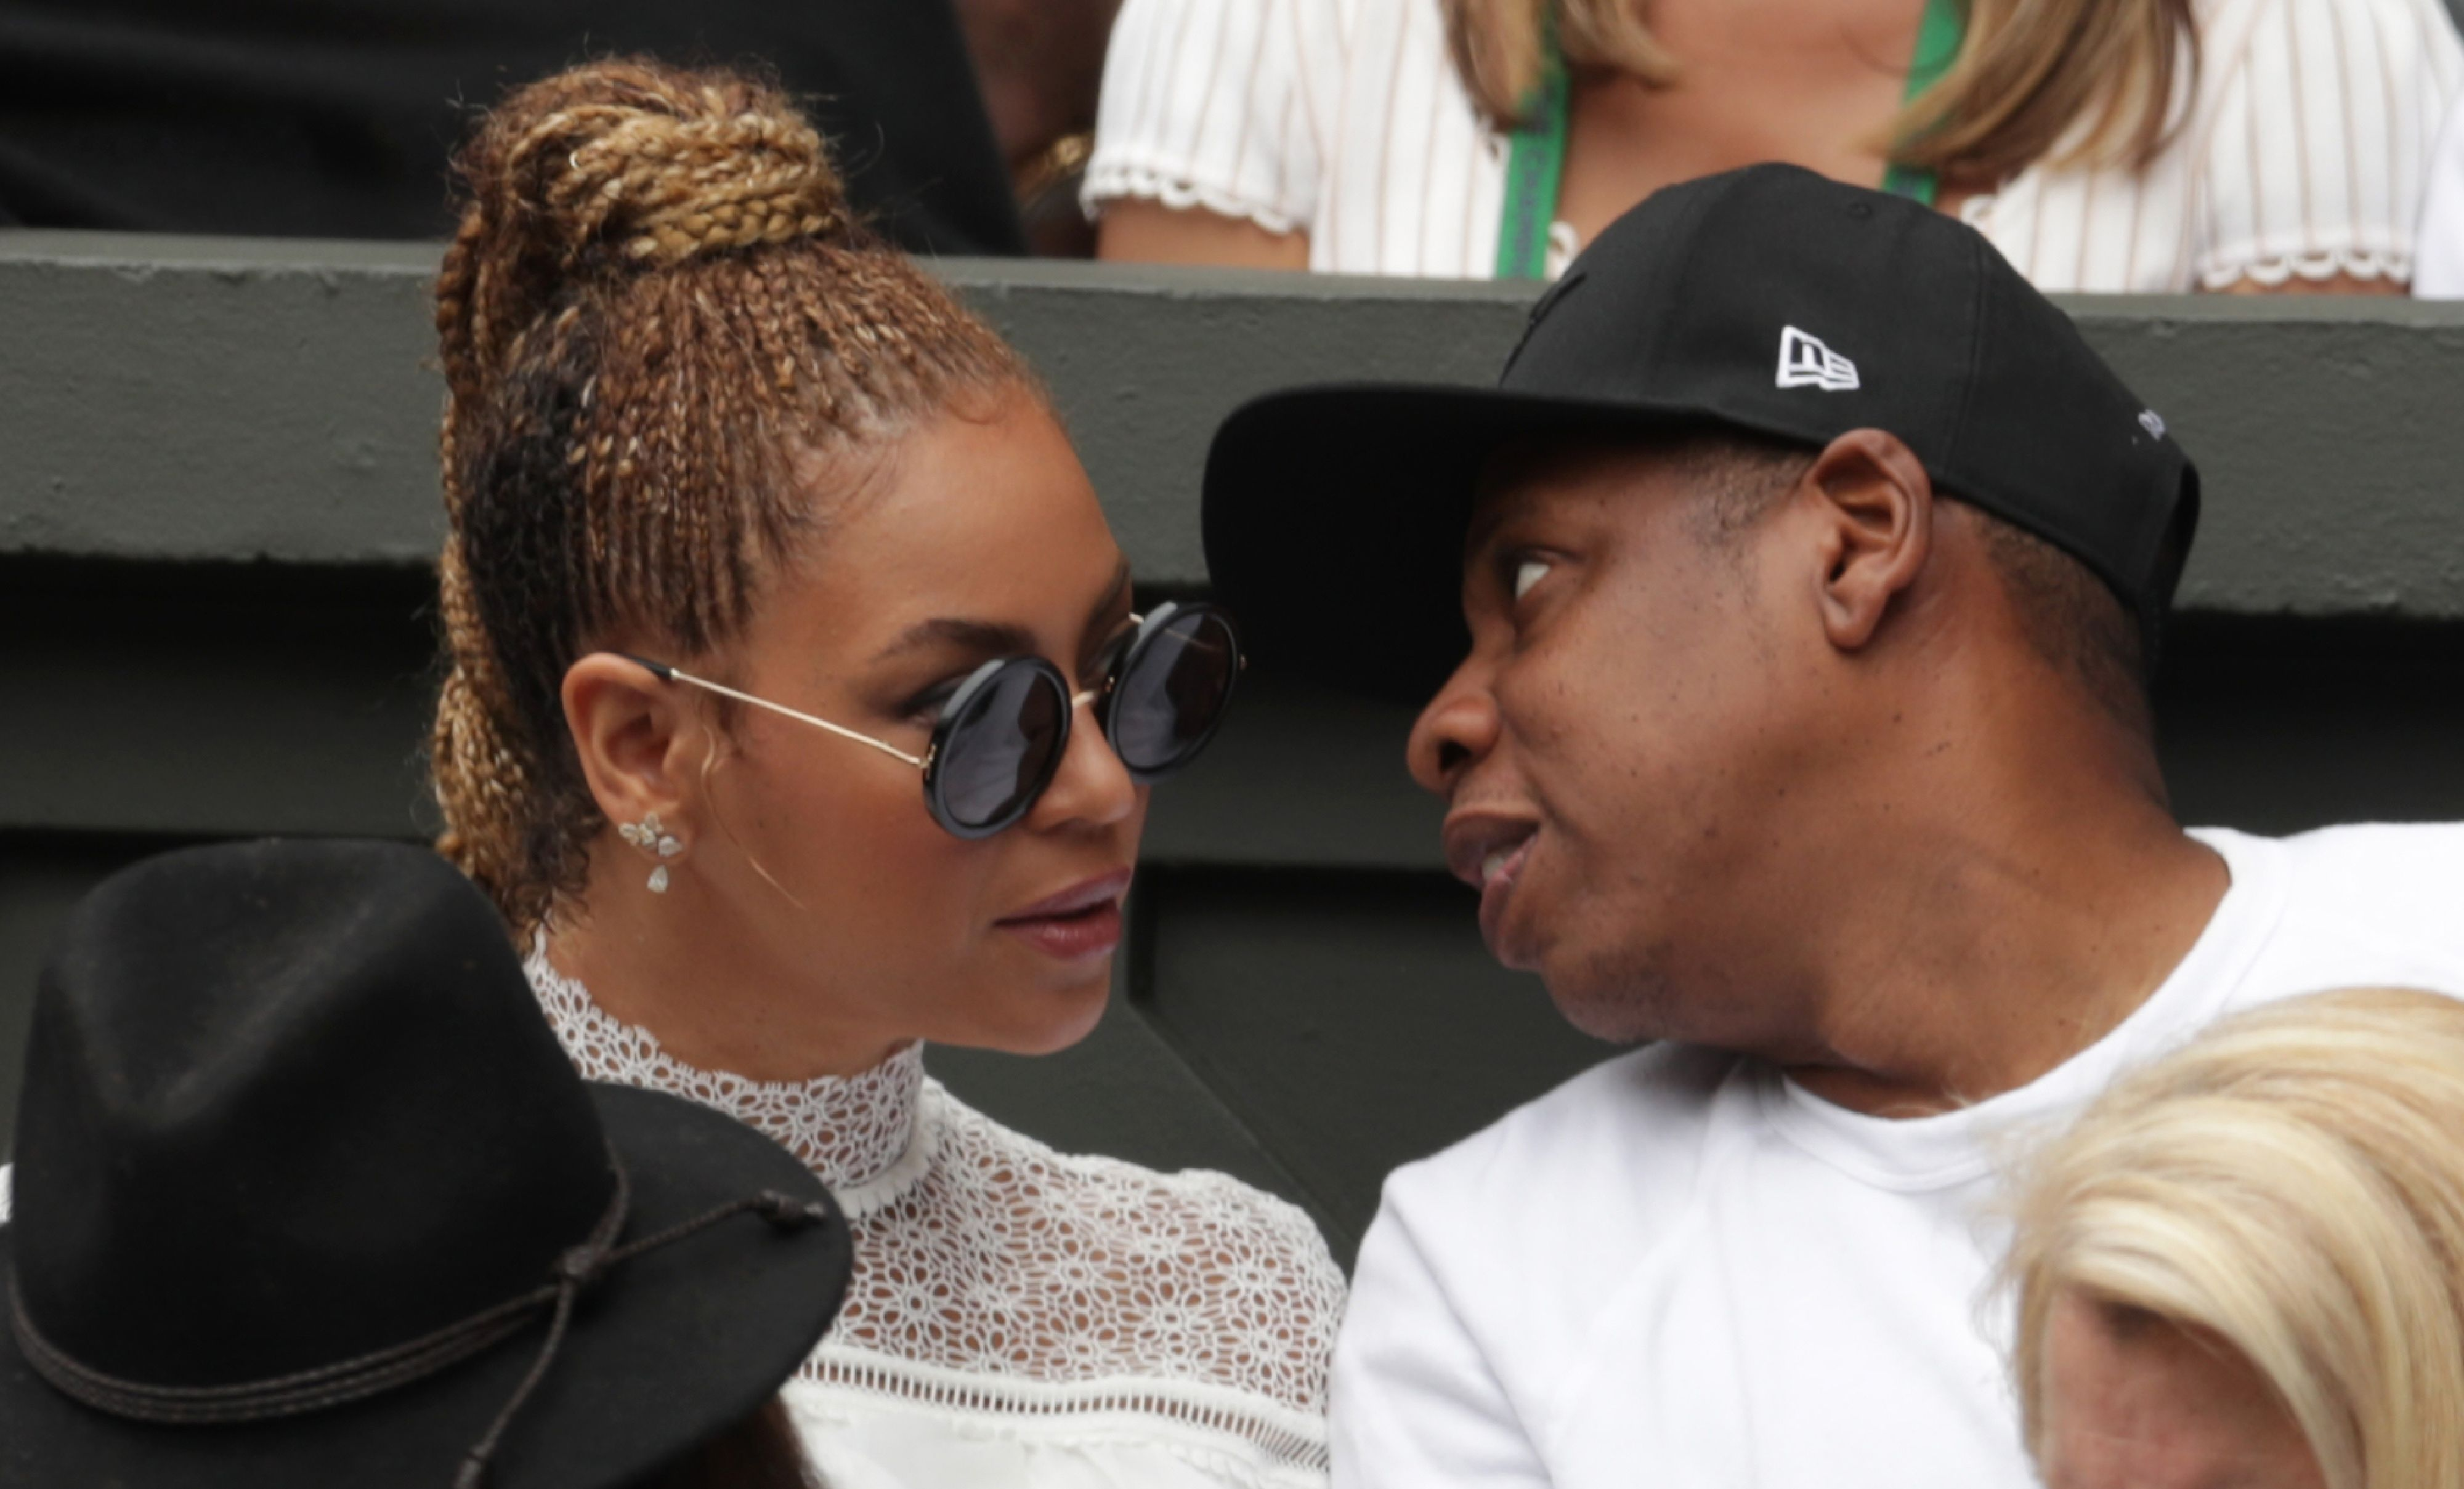 9 2016 shows US singer Beyonce and her husband US rapper Jay Z sitting in the players box to watch Serena Williams play against Germany's Angelique Kerber during the women's singles final of the 2016 Wimbledon Champi